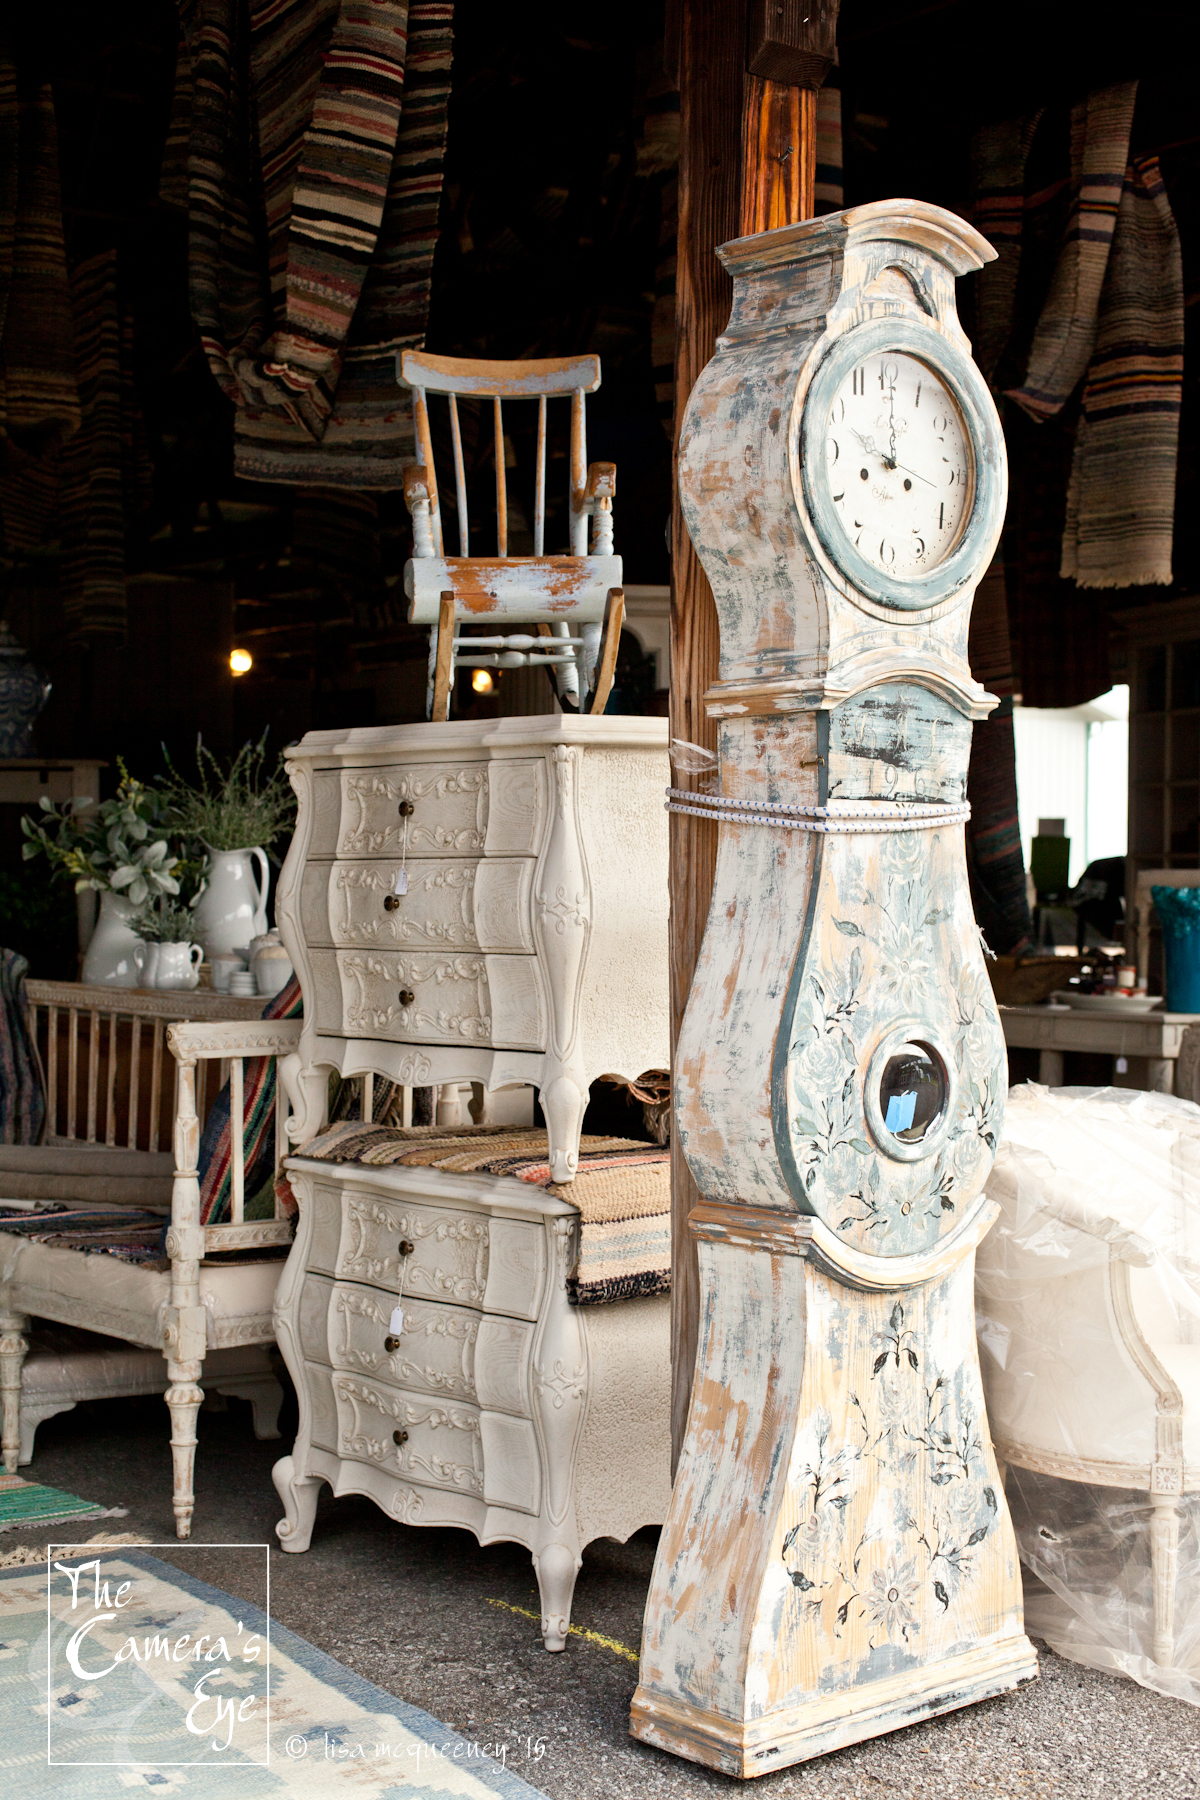 So, how does one get started in antique Swedish furniture? Jeff started  visiting Sweden in 1986, when he was 21 and especially interested in Swedish  girls ... - Meet Jeff Turney Of Lone Ranger Antiques! The Camera's Eye